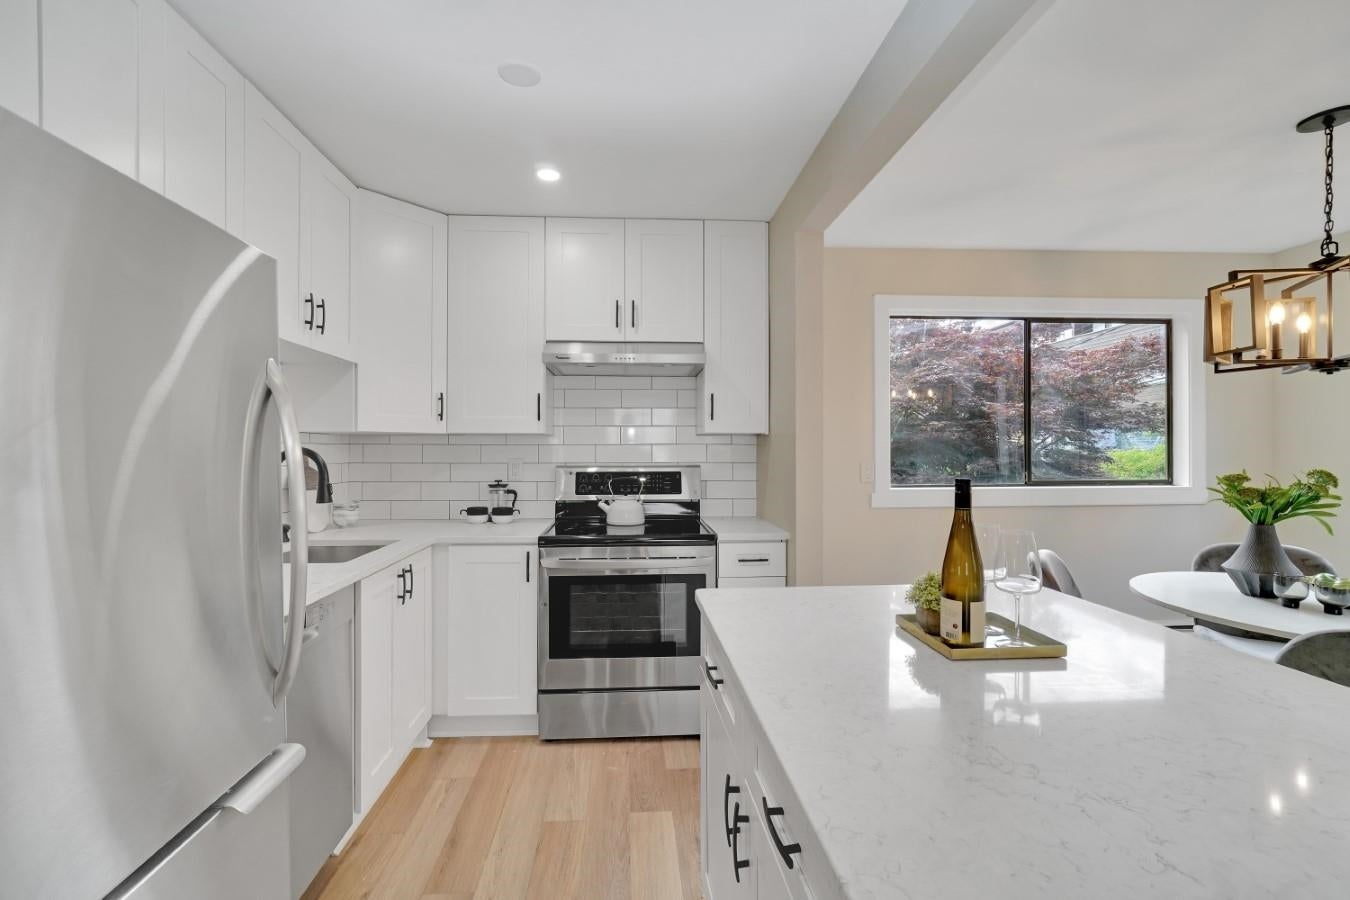 206 330 W 2ND STREET - Lower Lonsdale Apartment/Condo for sale, 2 Bedrooms (R2604160) - #4